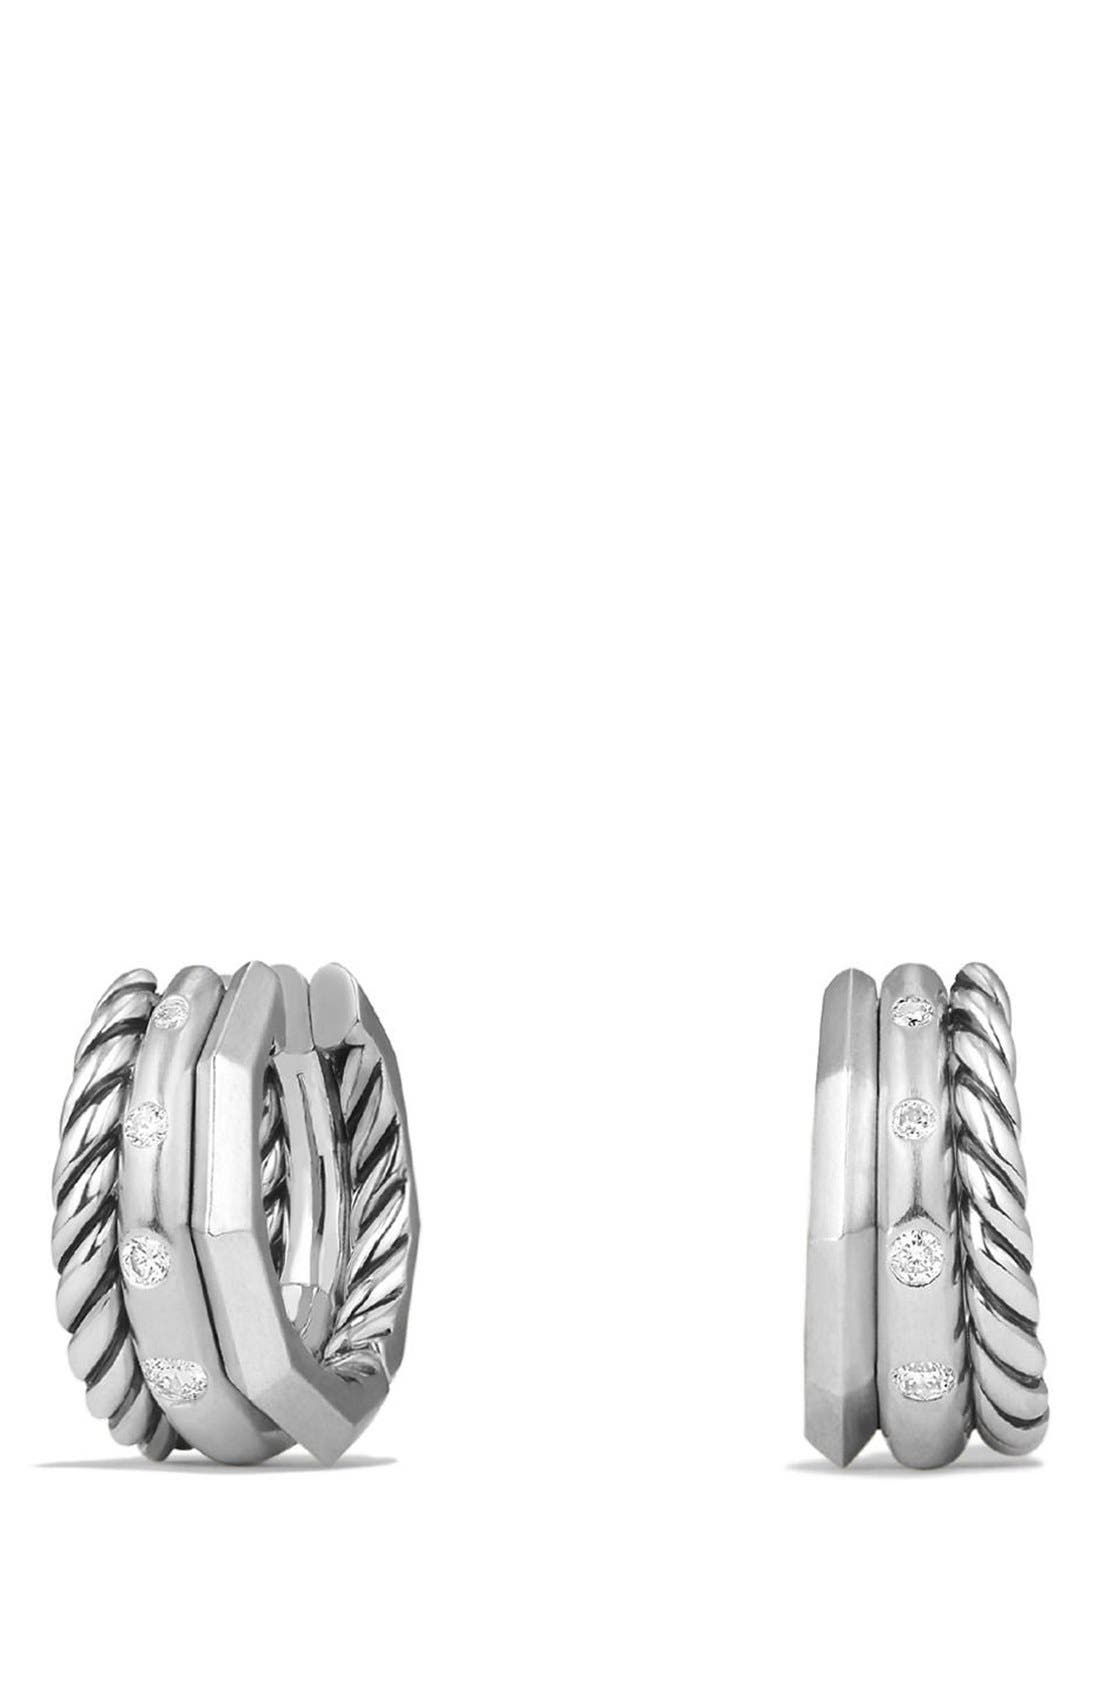 David Yurman 'Stax' Diamond Hoop Earrings